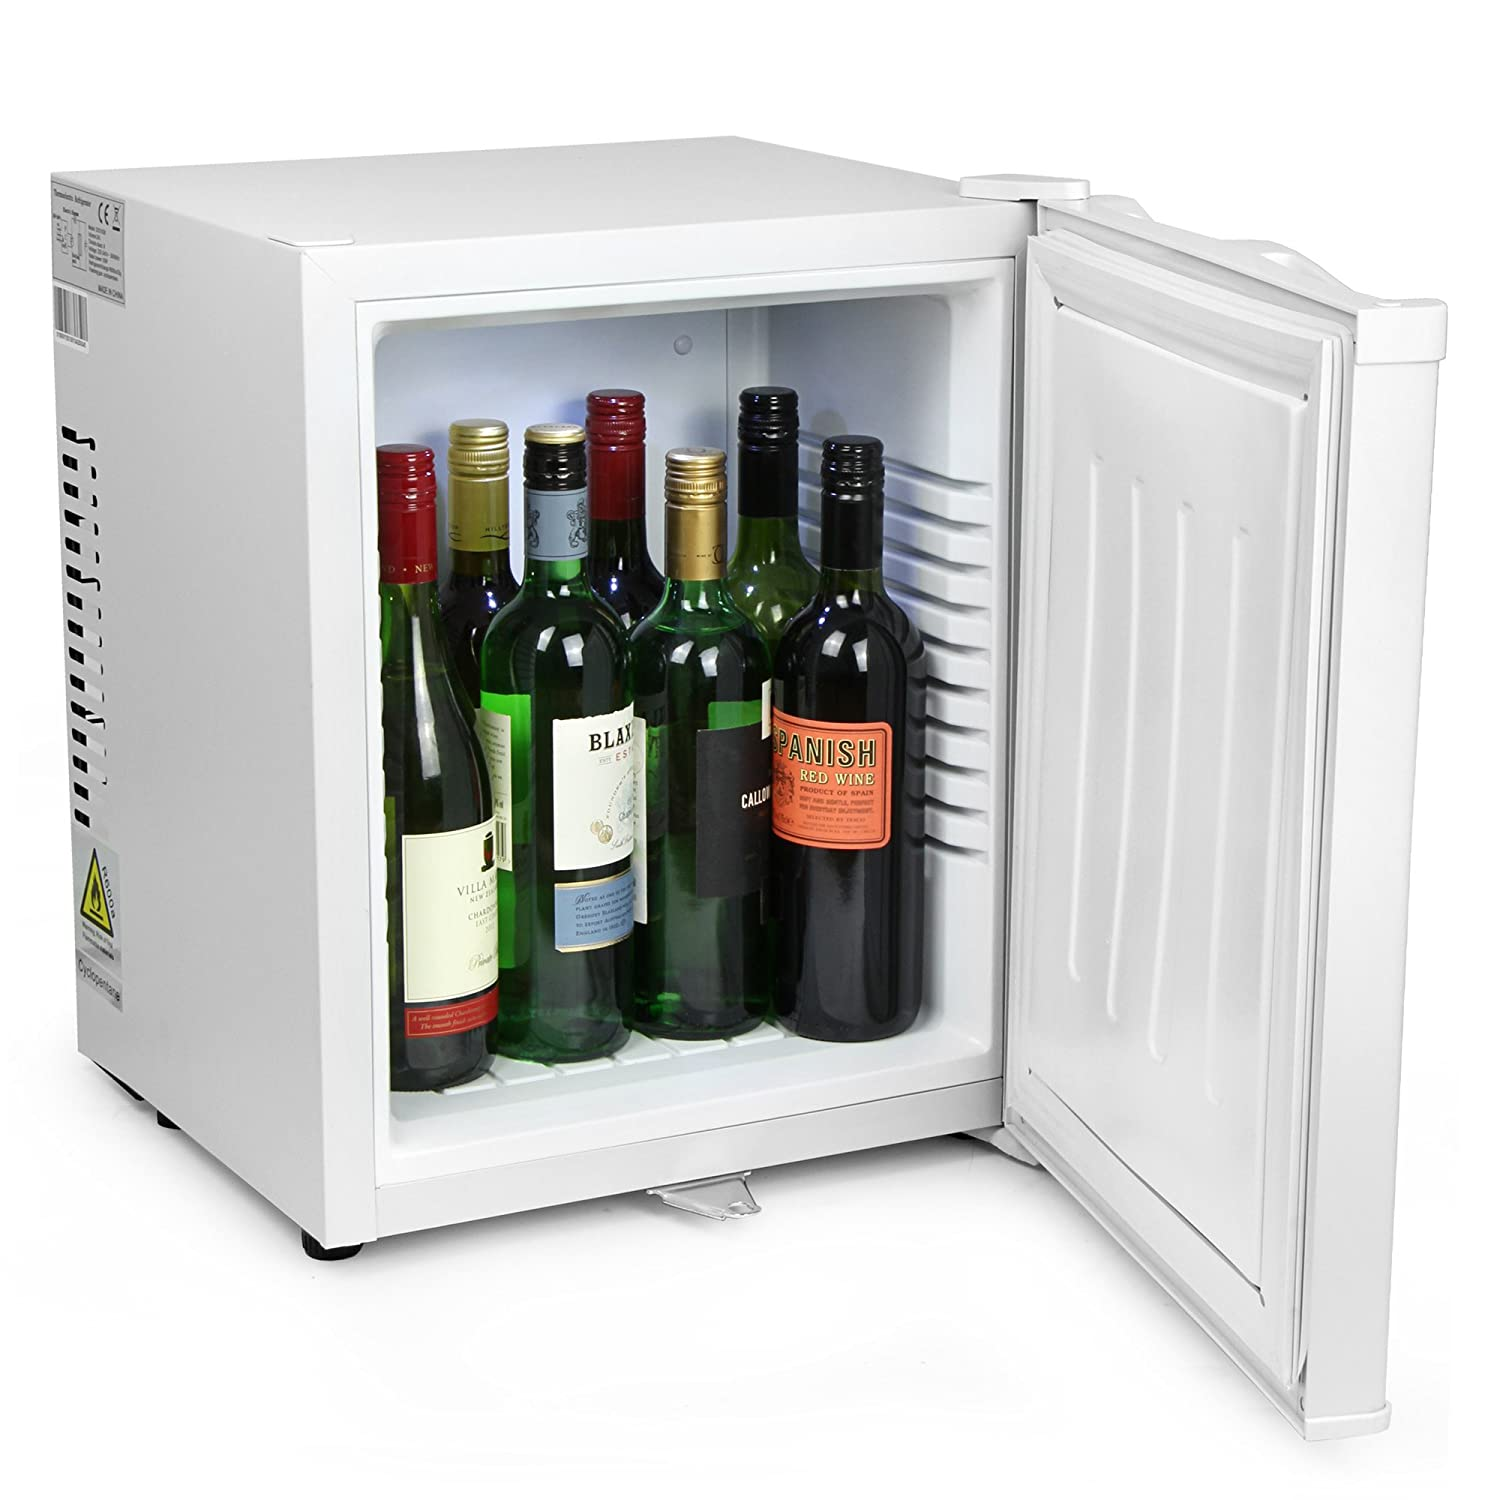 bar@drinkstuff ChillQuiet Silent Mini Fridge 24ltr White - Completely Quiet Mini Bar, Ideal for Hotels and B&Bs [Energy Class B]